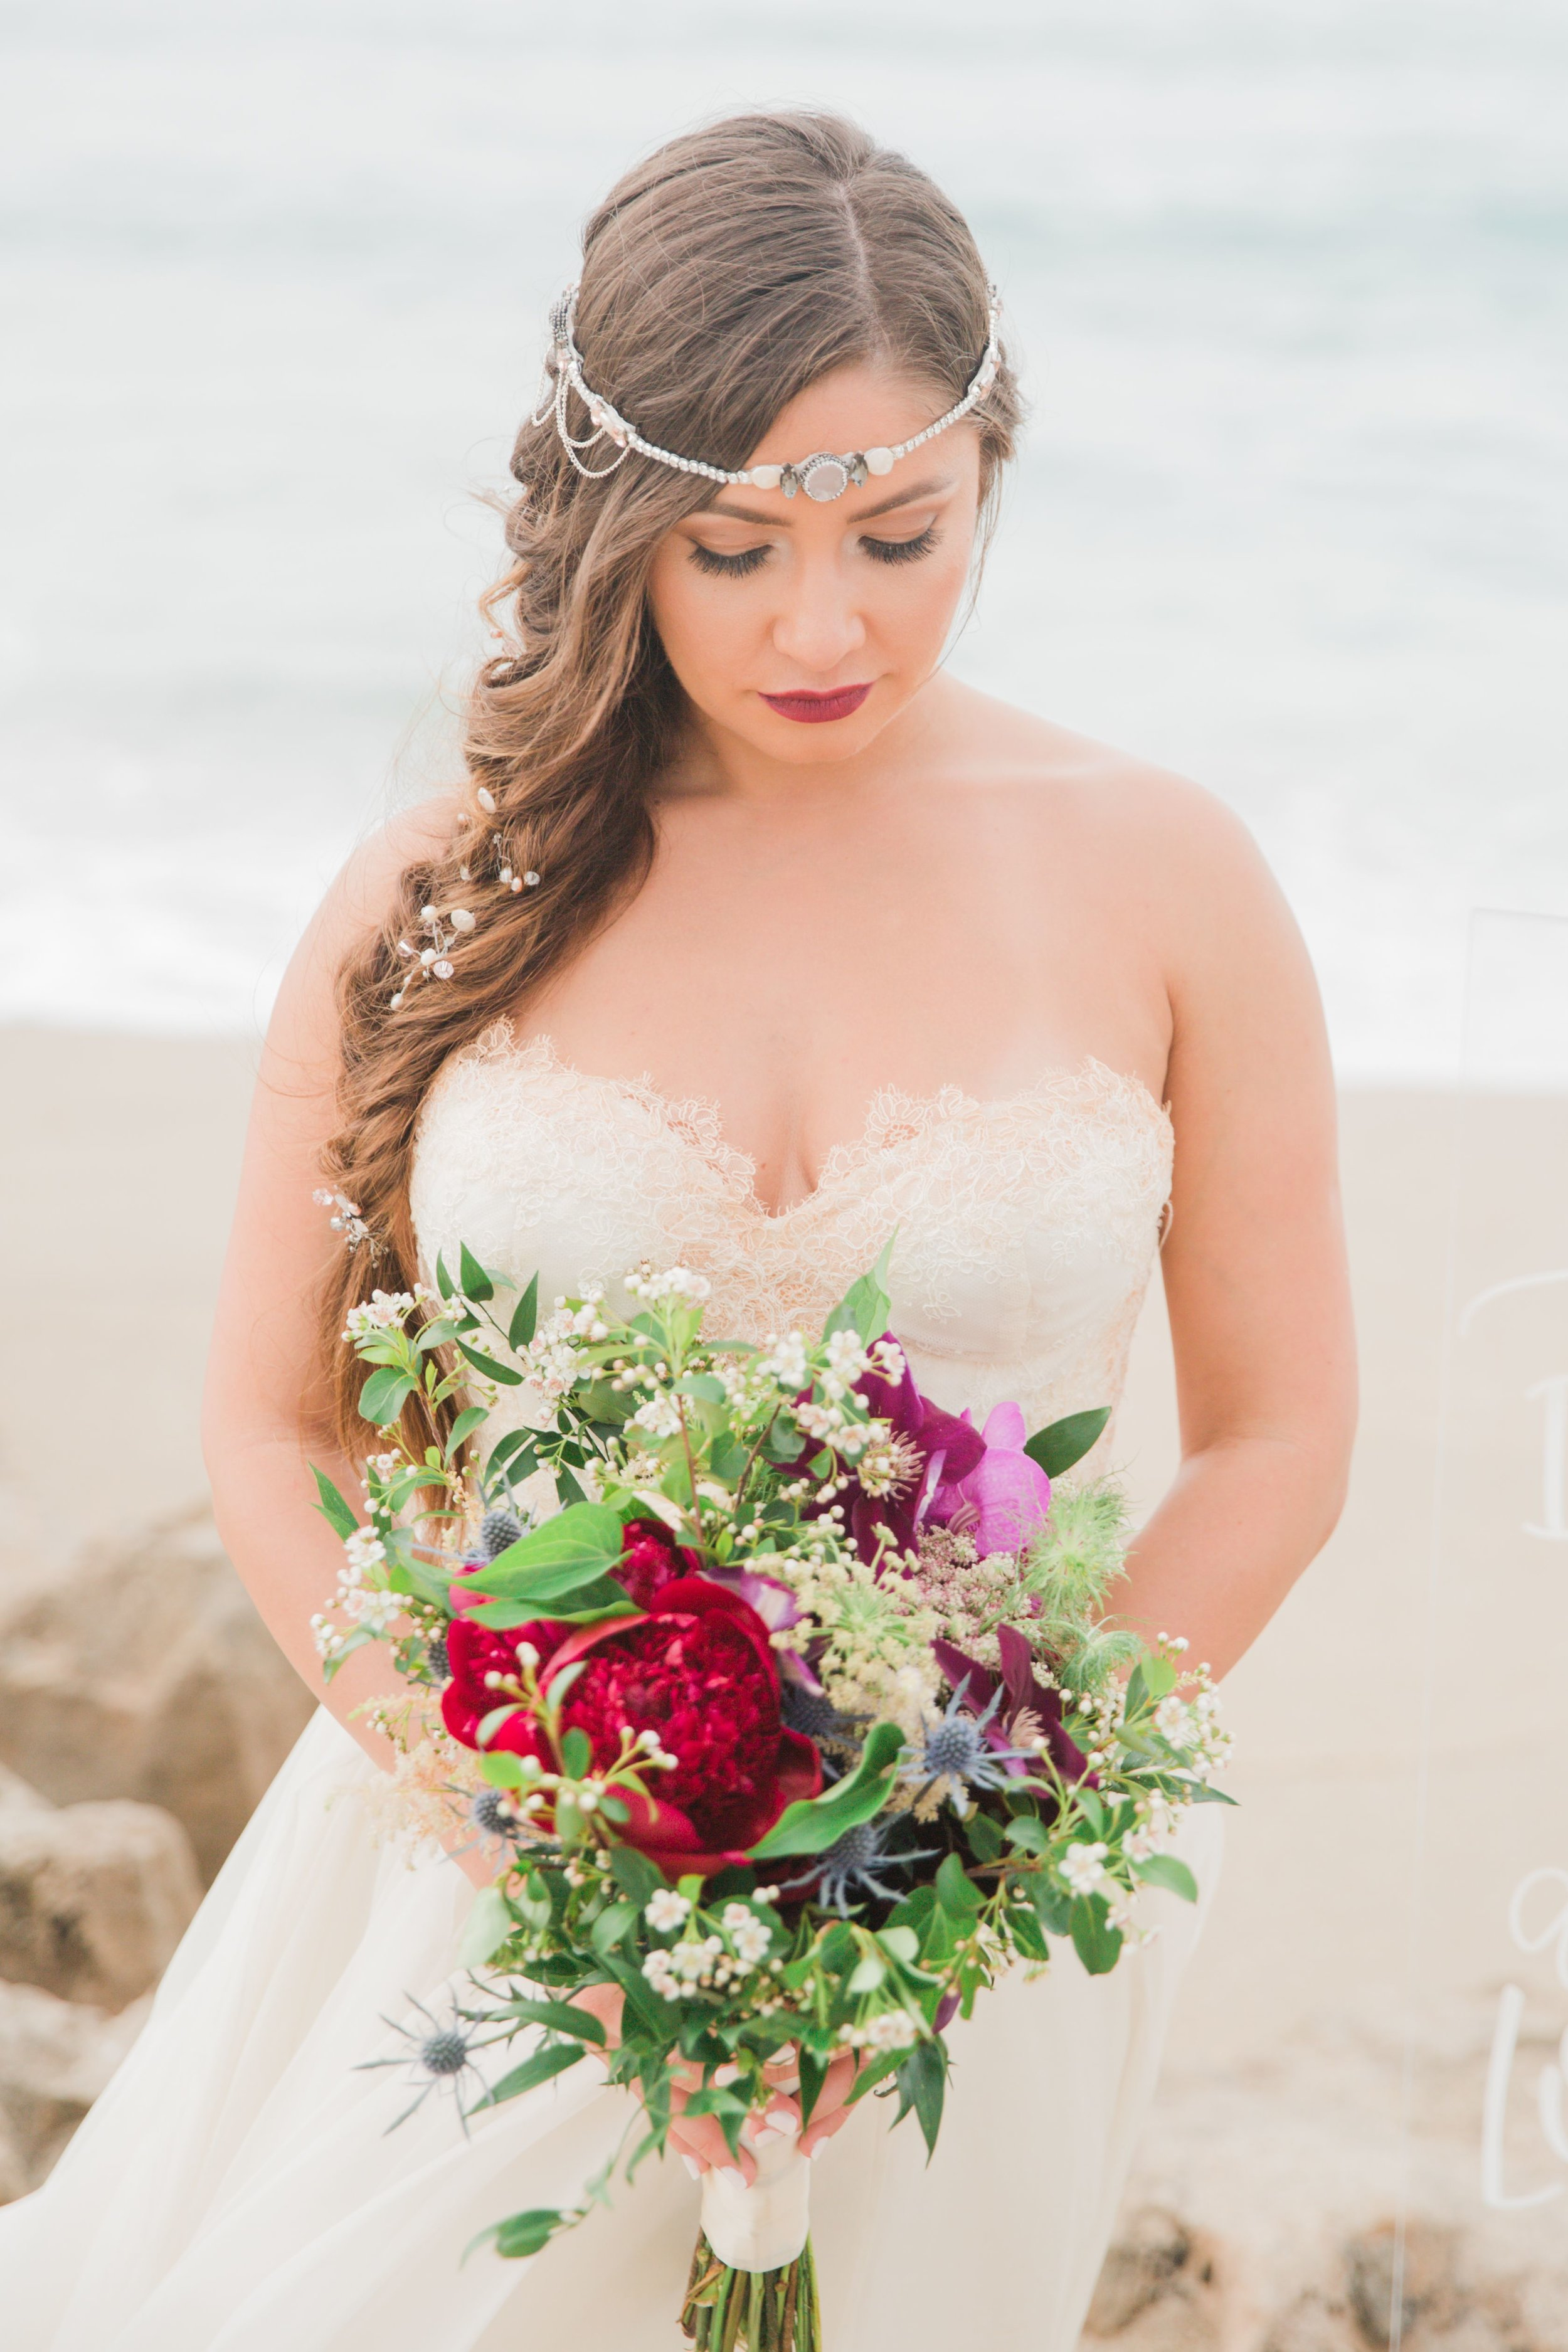 Boho Bridal halo, Crytal bridal Halo, Wedding Hair accesorries, Champagne and GRIT - Copy.jpg